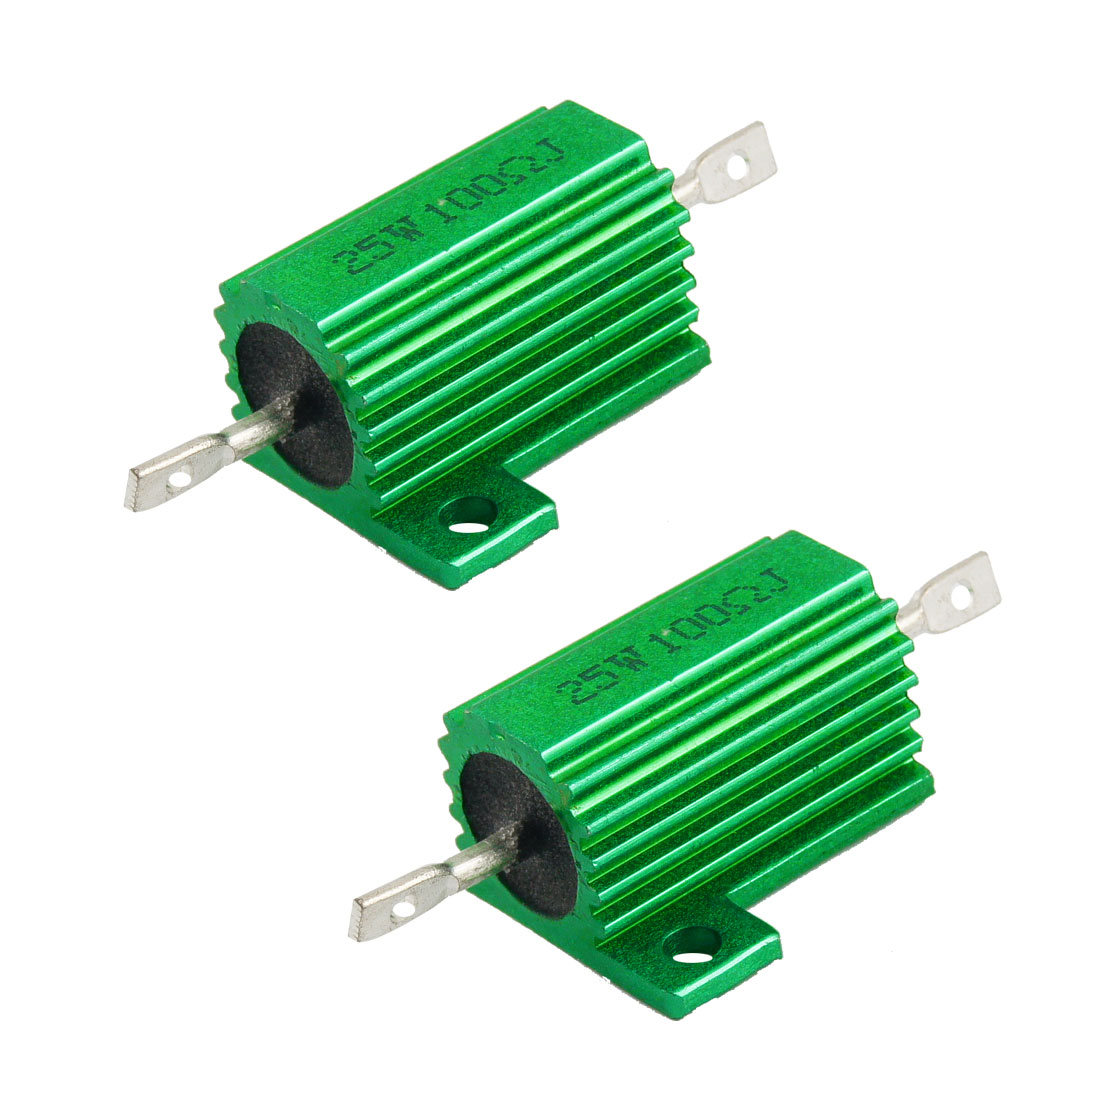 25W 100 Ohm Green Aluminum Housed Wirewound Resistors 2 Pcs